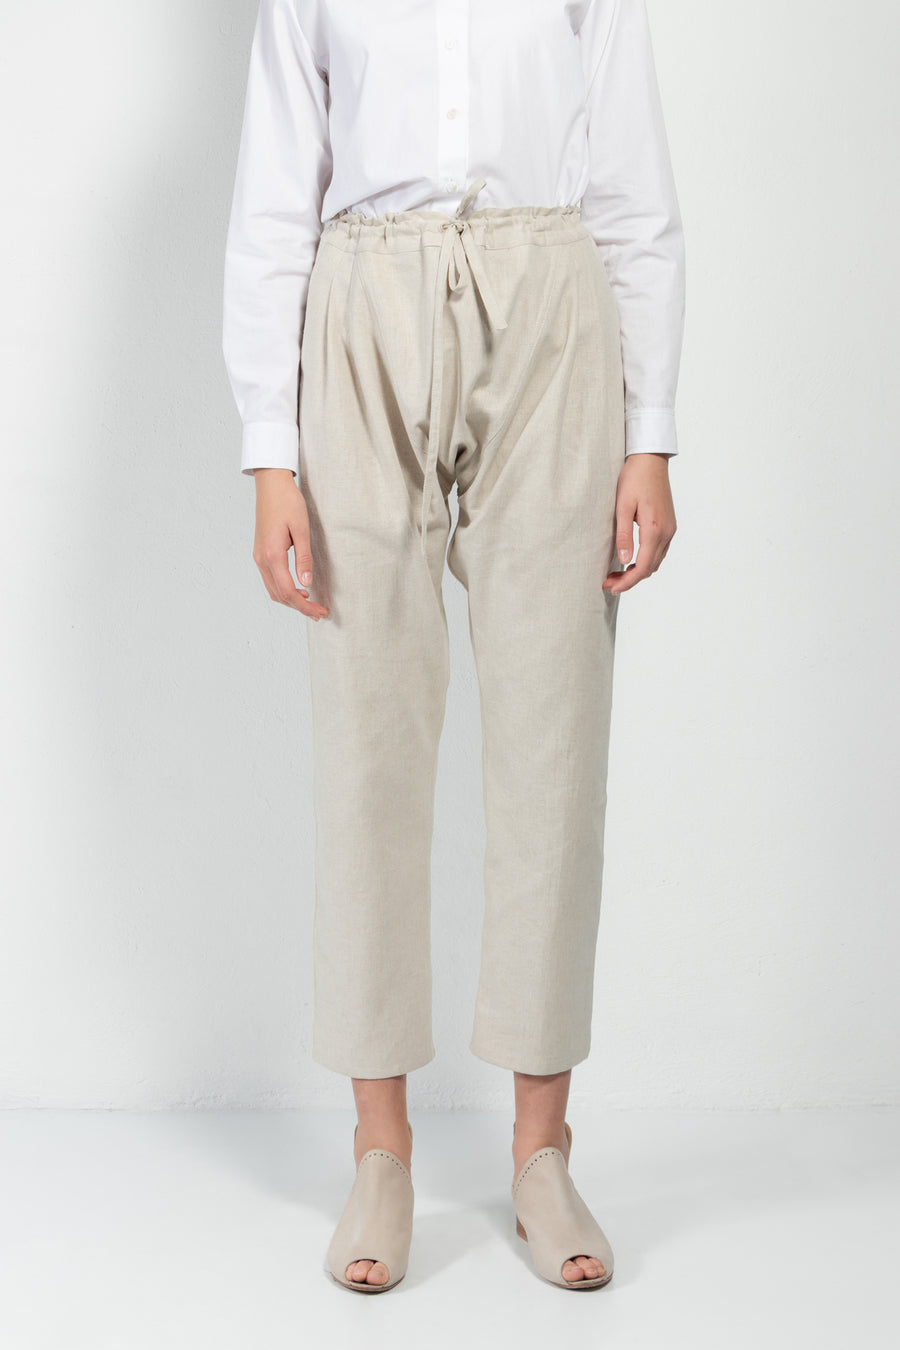 Jorge Linen Drop-Crotch Drawstring Pants